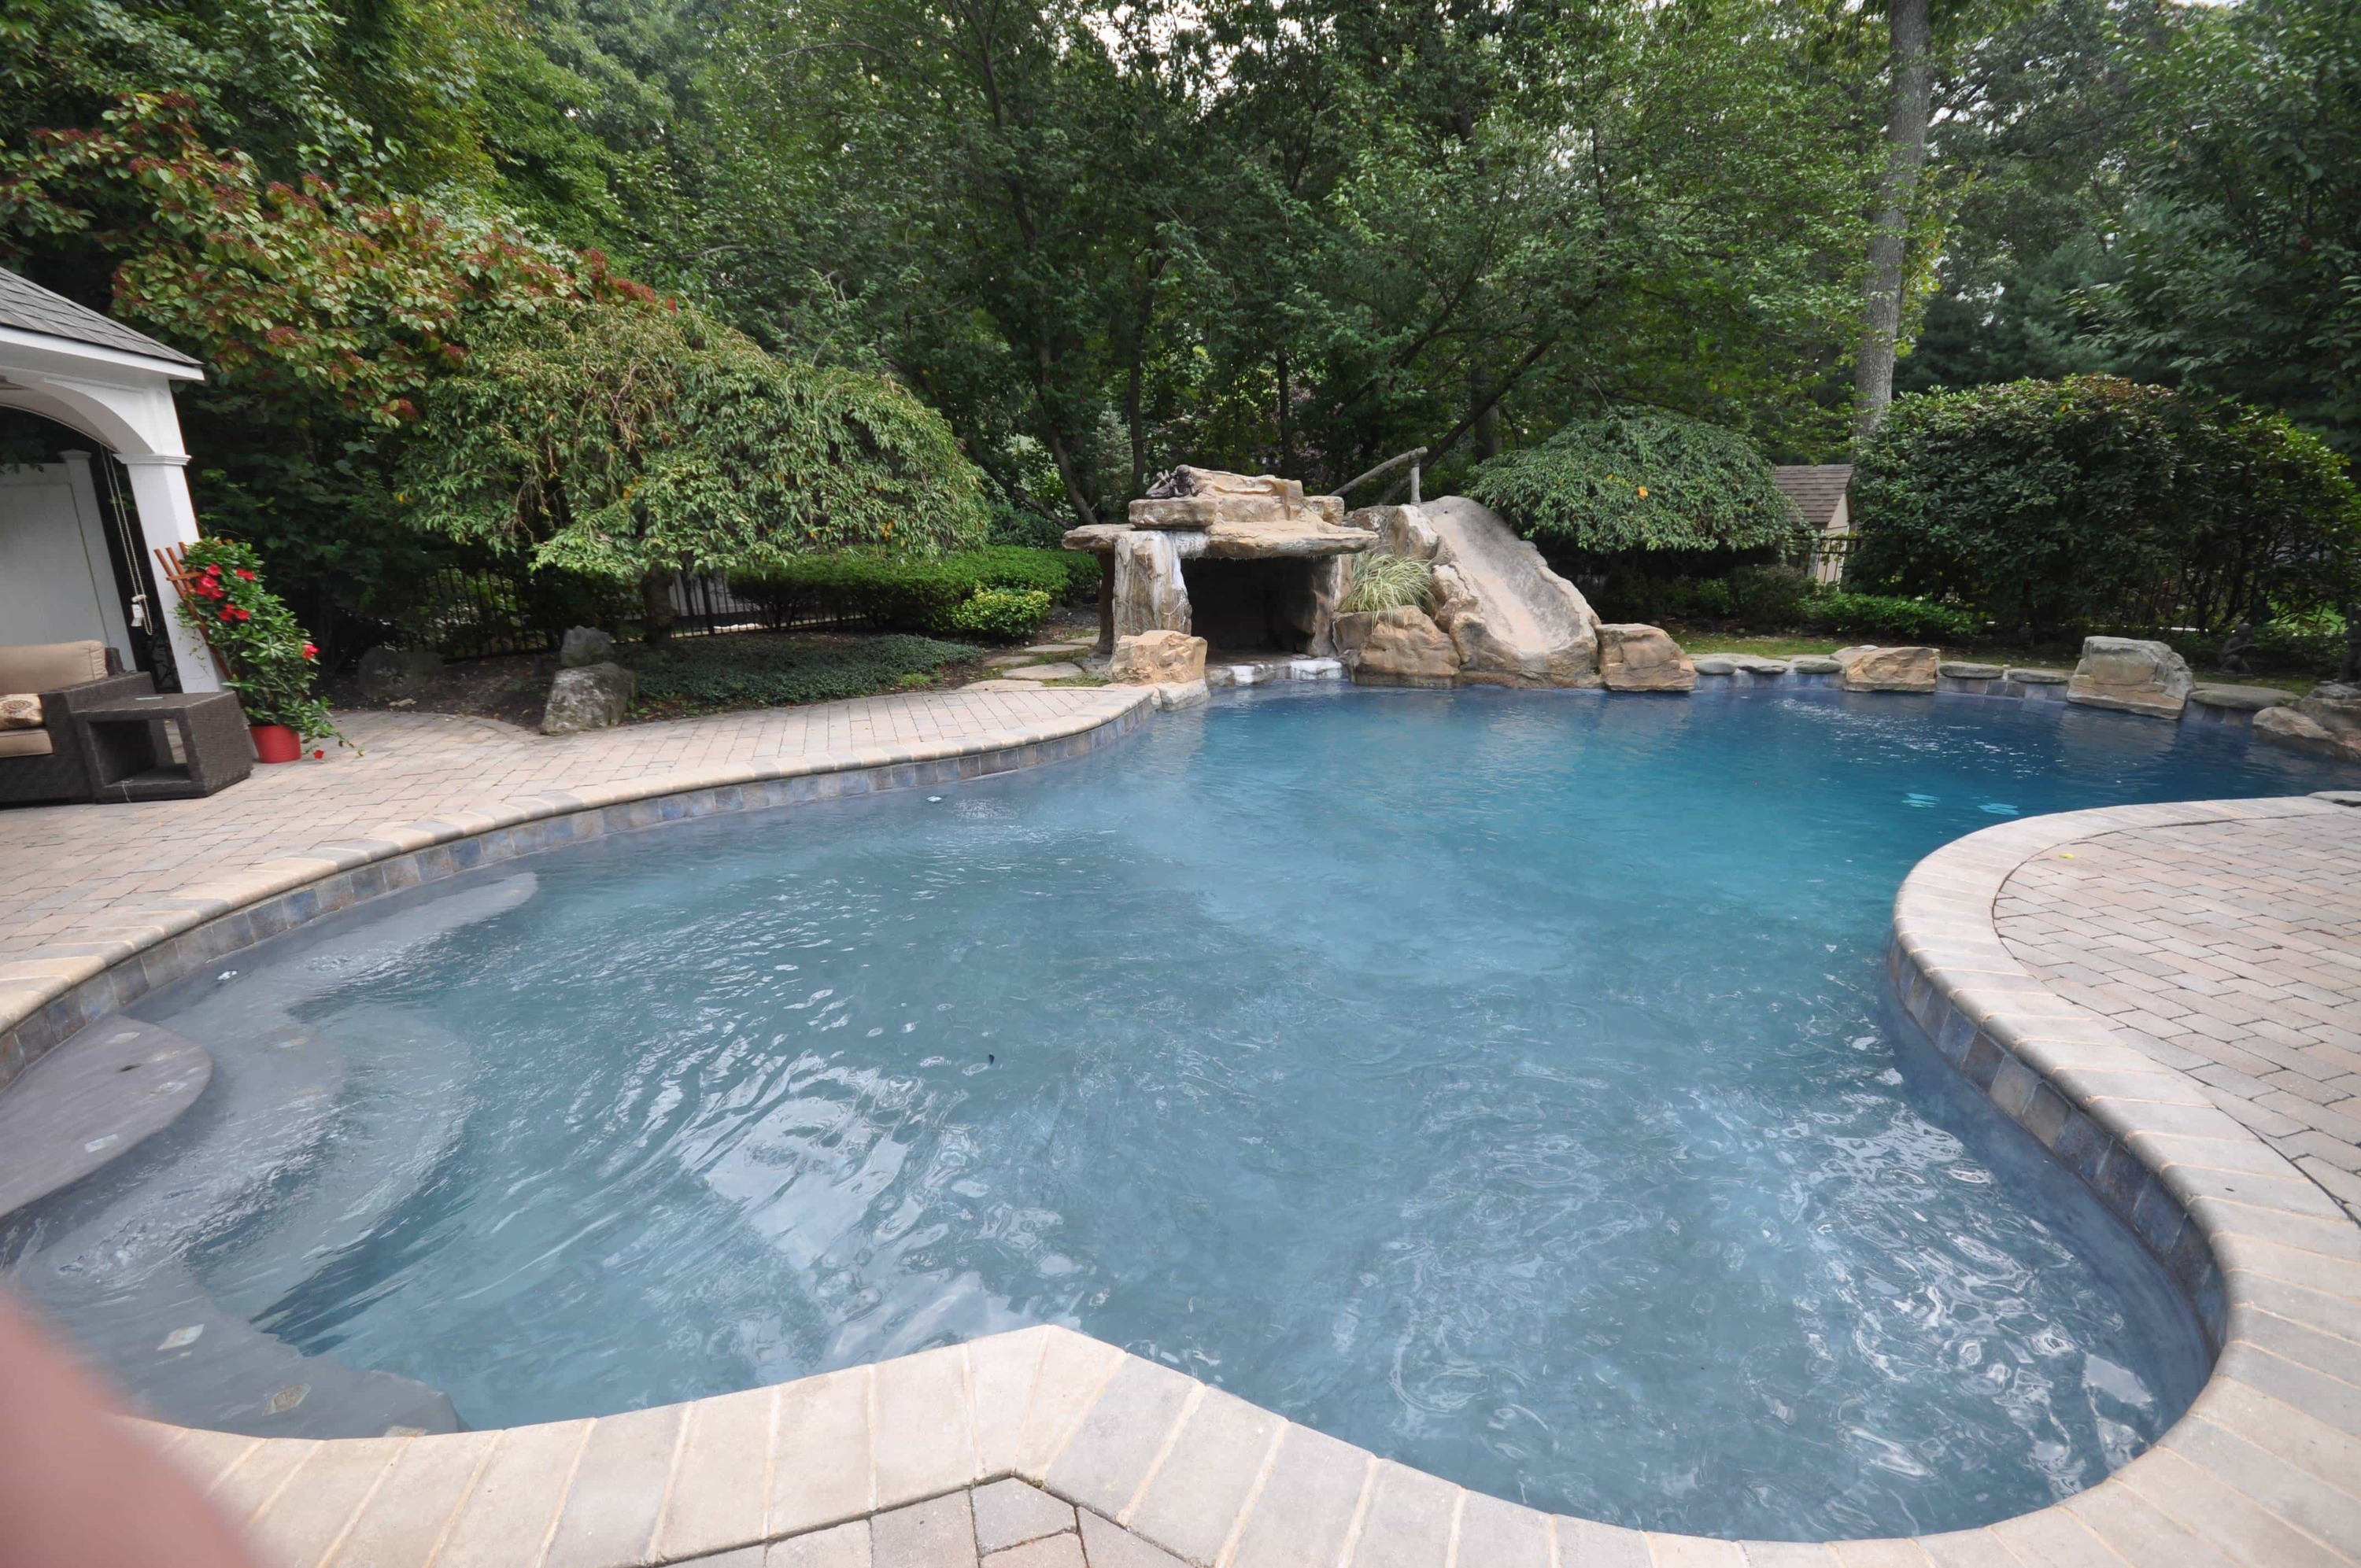 Gappsi Provides Gunite Swimming Pool Remodeling Services In Both Nassau And  Suffolk County Long Island NY. For More Information About Gappsi, Please  Contact ...